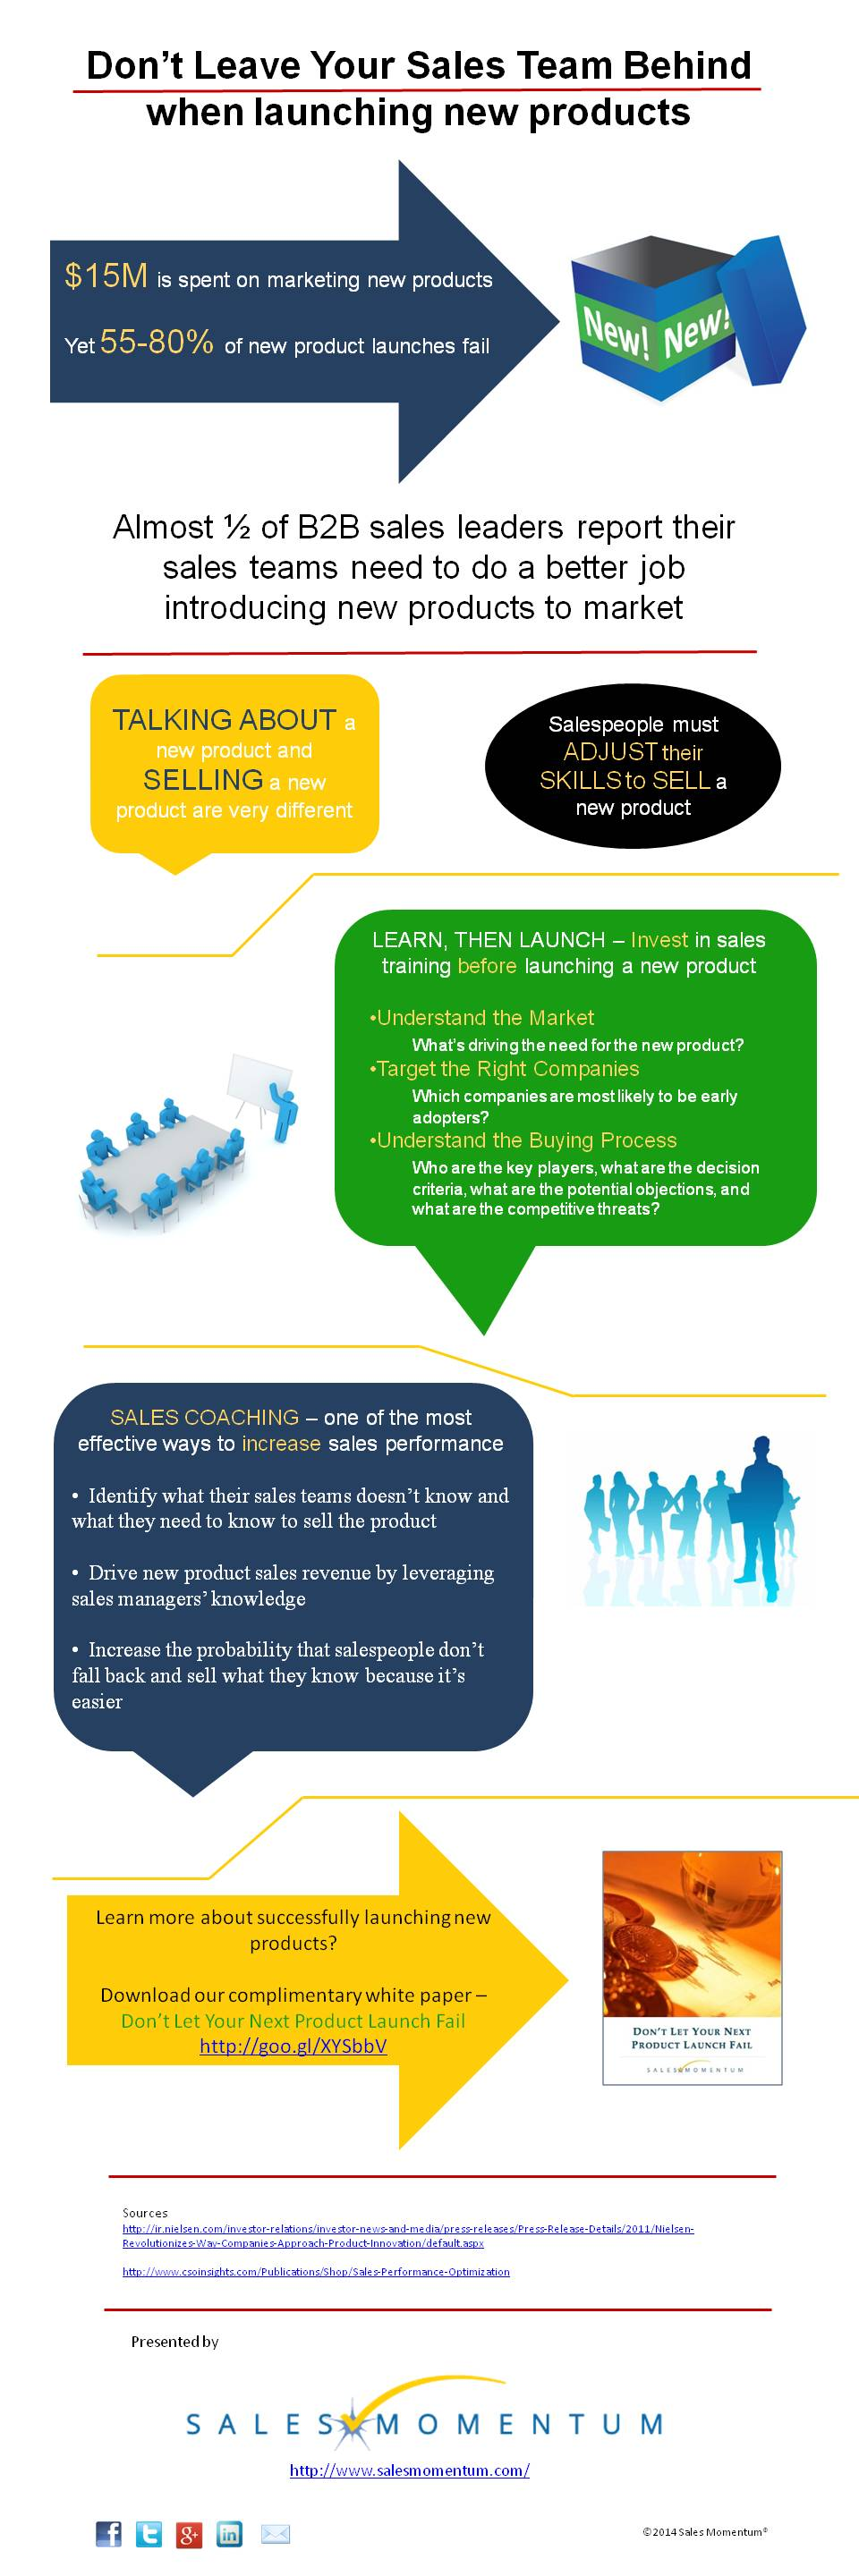 do-not-leave-your-sales-team-behind-new-product-launch-infographic-920